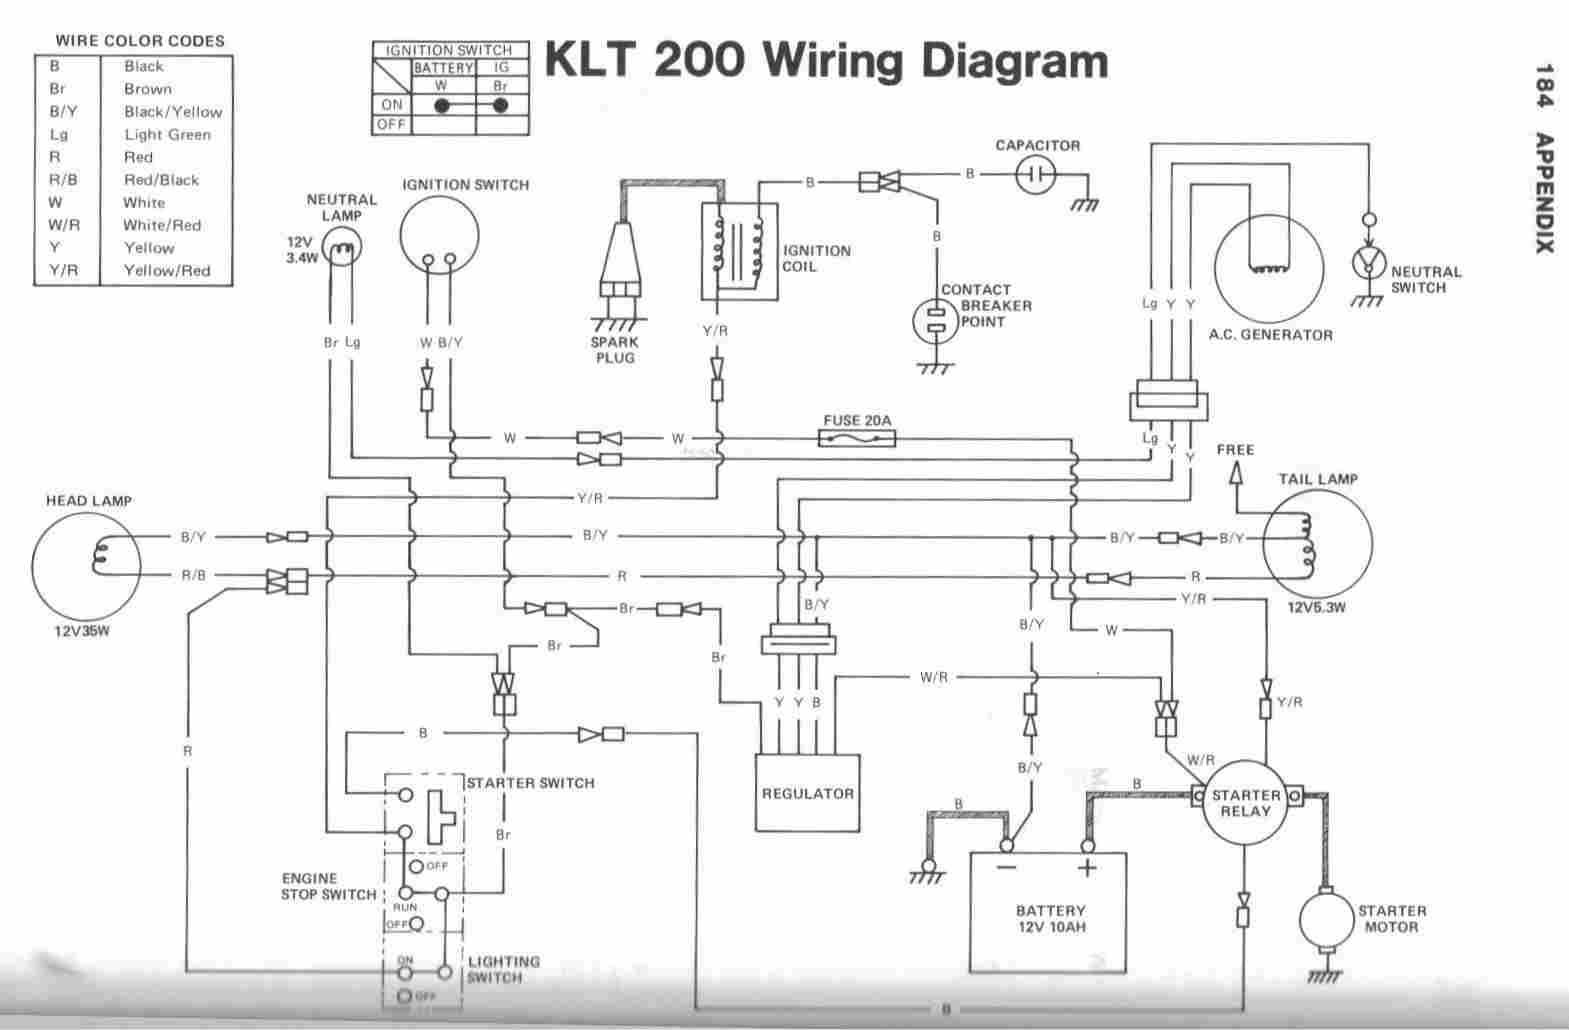 wiring diagrams pdf wiring diagram for you industrial wiring diagrams pdf [ 1569 x 1030 Pixel ]